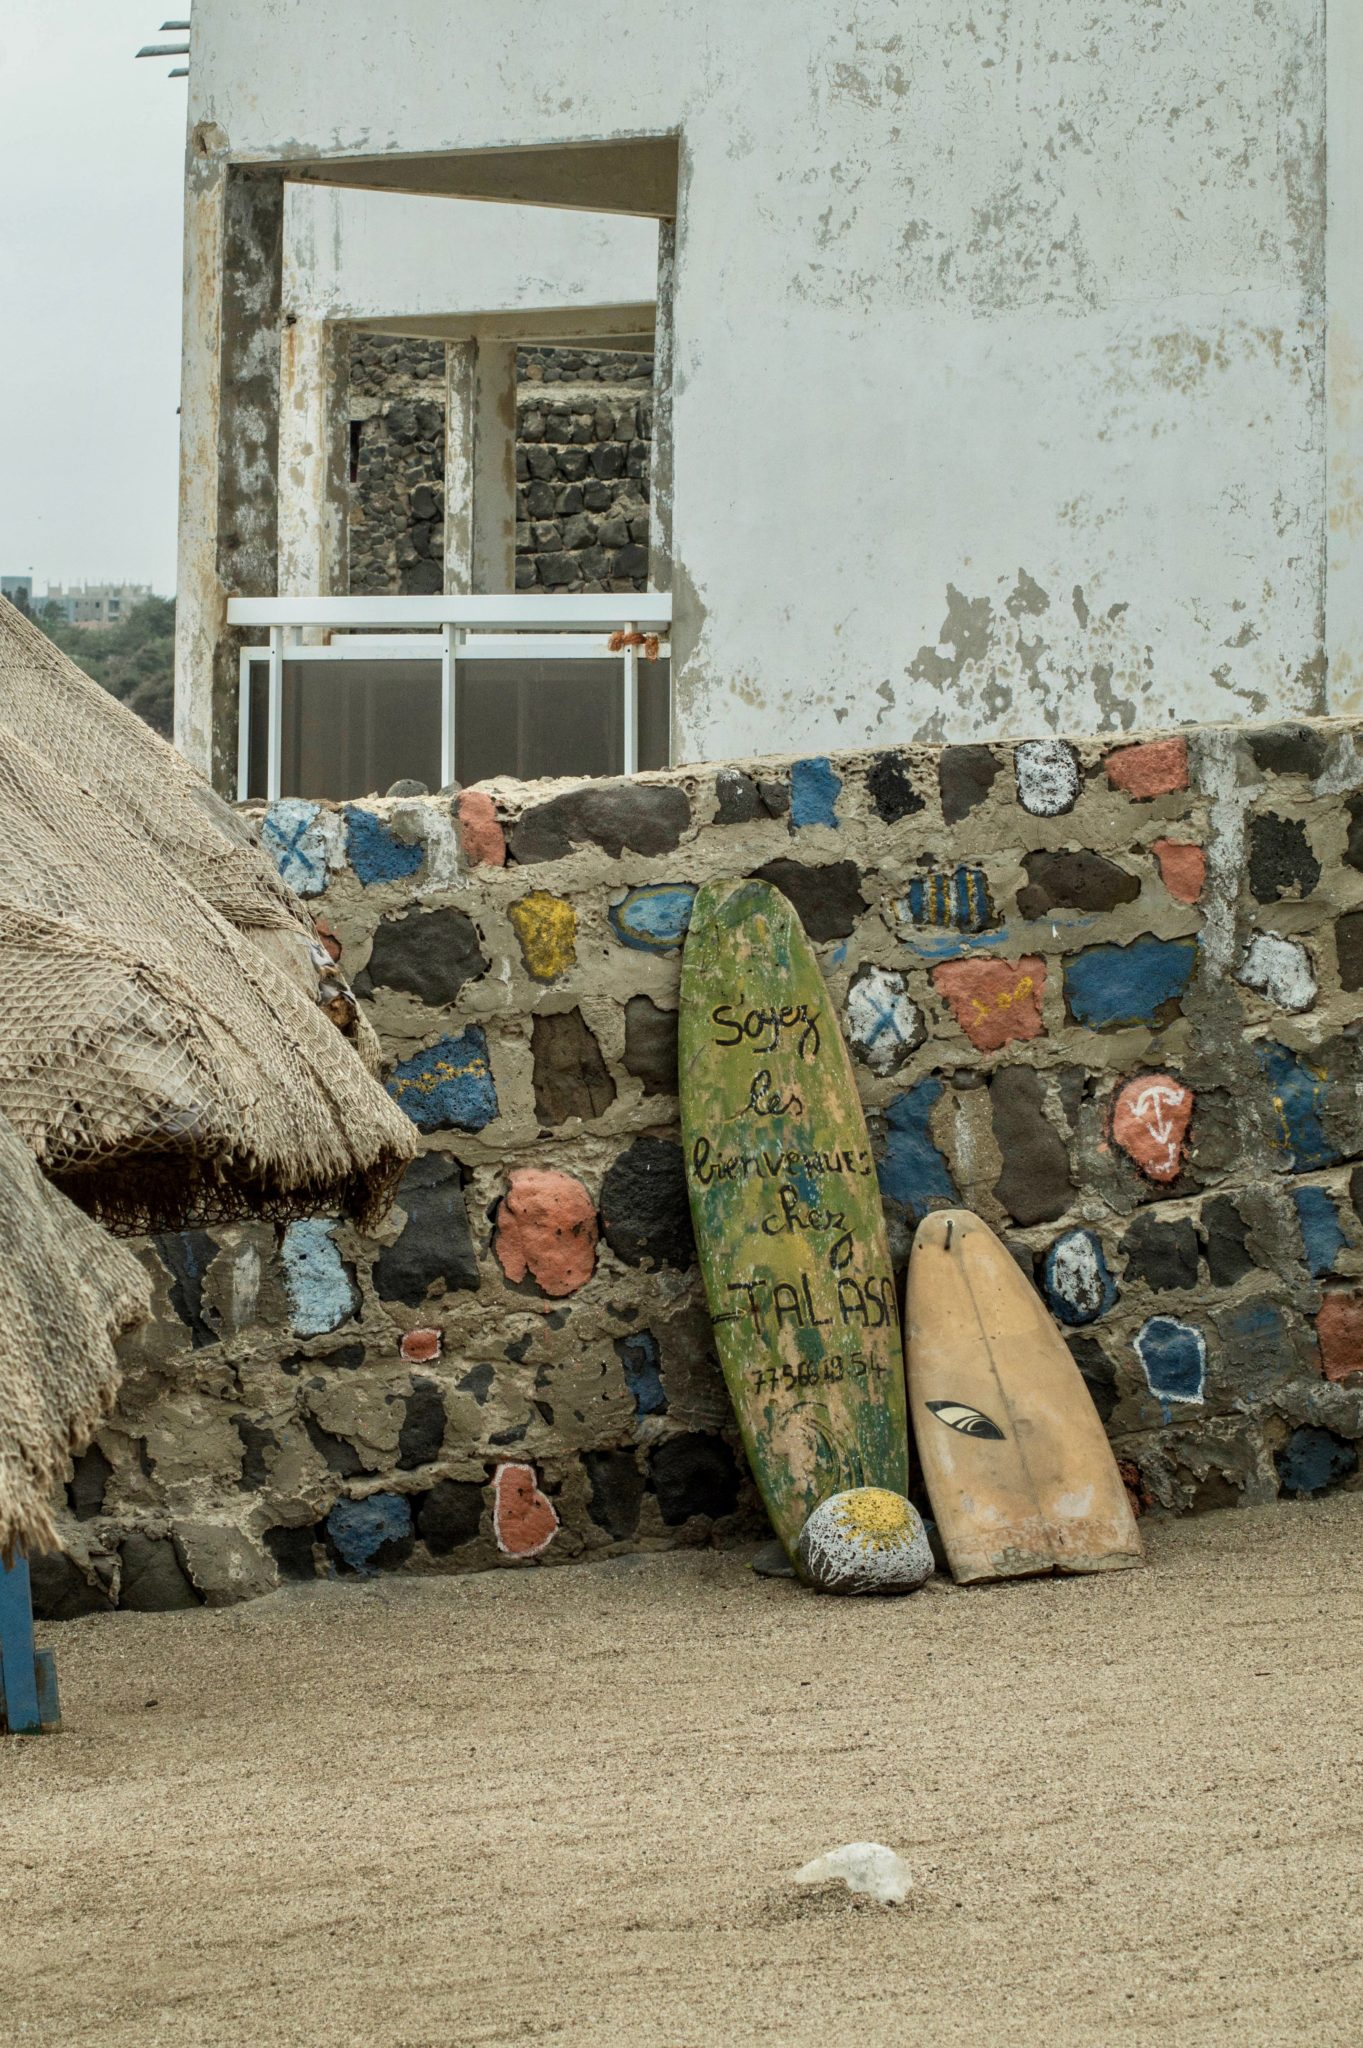 Senegal surf: Broken boards as decoration on Ngor Island